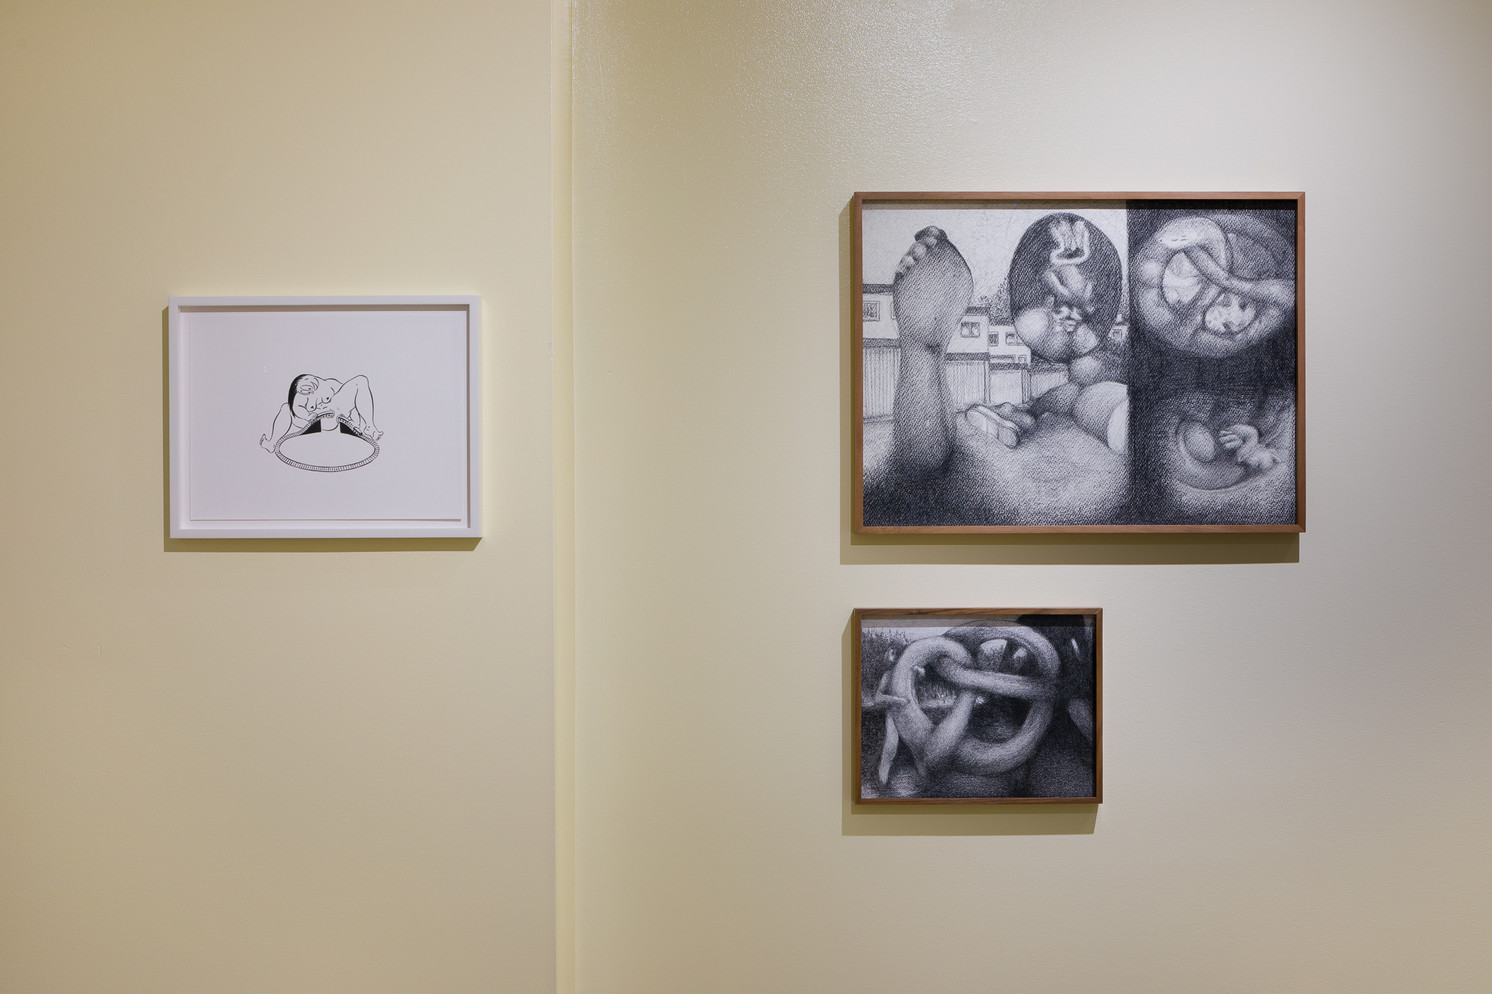 Left: Ebecho Muslimova, Untitled, 2015. Ink on paper. Courtesy of the artist and Michail Pirgelis. Top Right: Till Megerle, The Hussengut, 2016. Charcoal on paper. Courtesy of Christian Andersen, Copenhagen. Bottom right: Till Megerle, The Thug Silhouette, 2017. Charcoal on paper. Courtesy of Christian Andersen, Copenhagen.